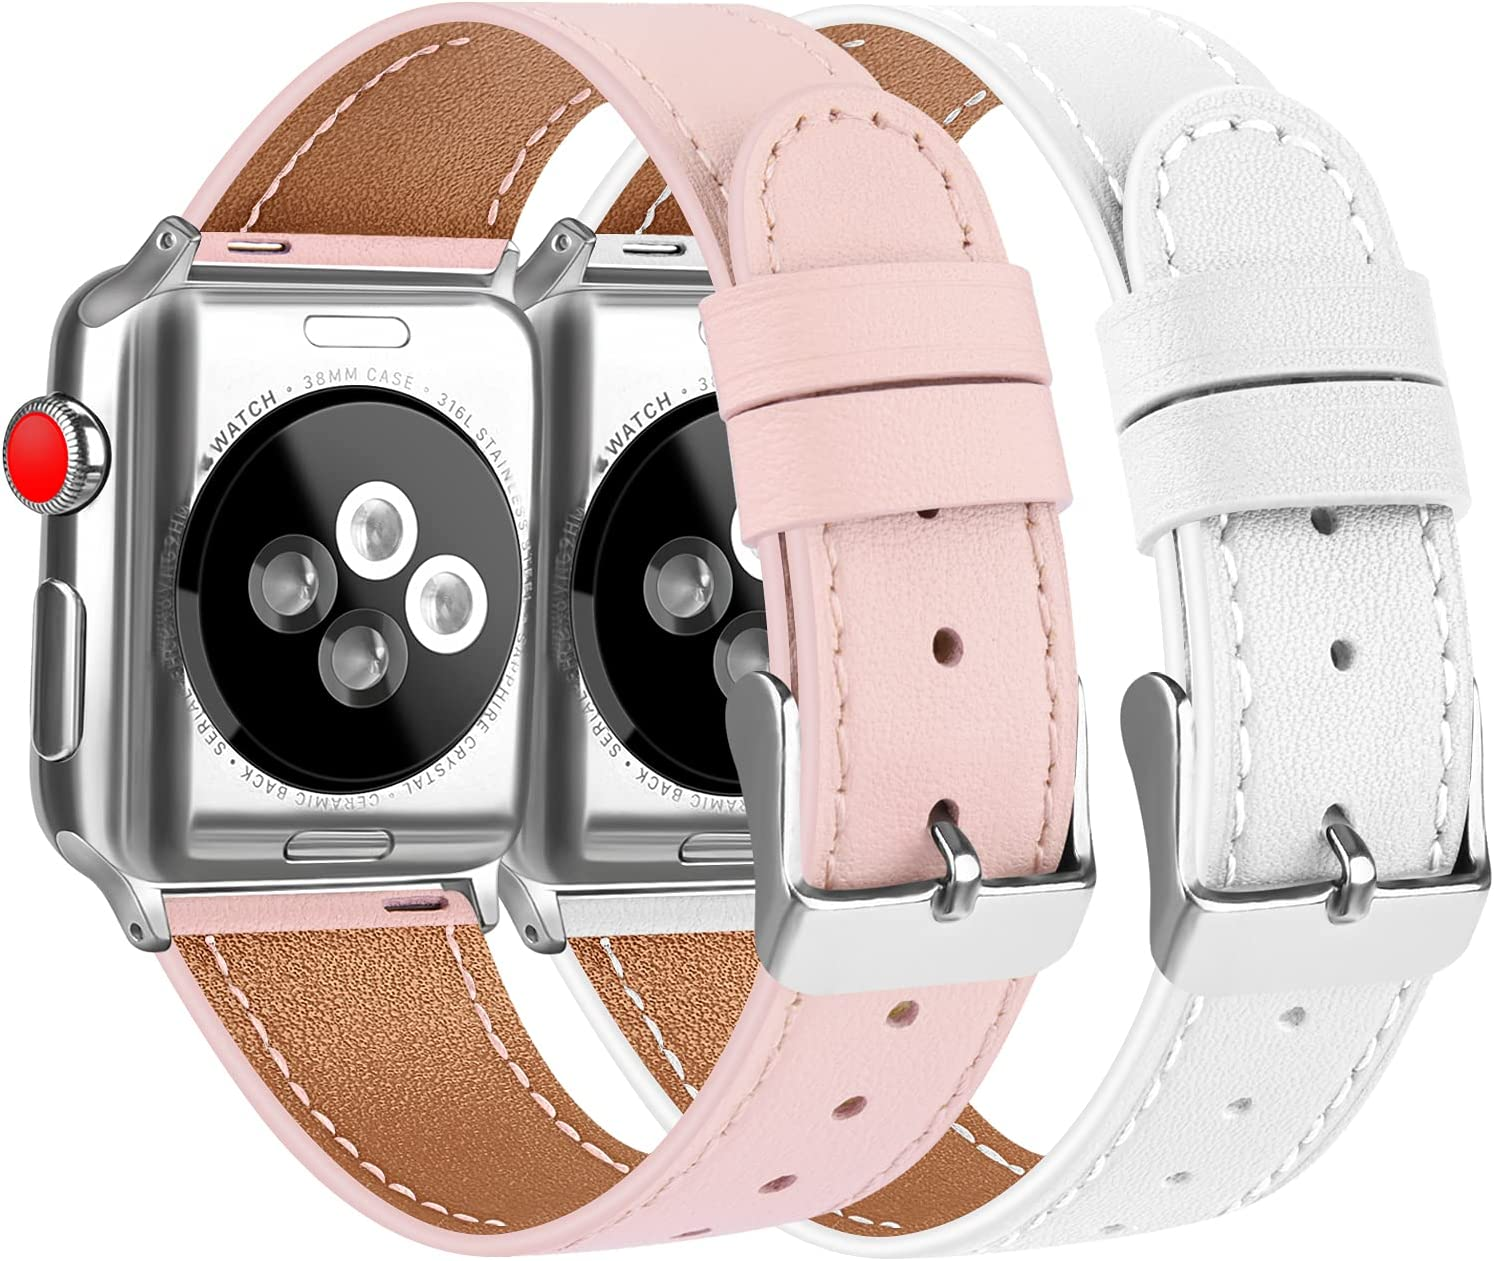 [2 Pack] Leather Bands Compatible with Apple Watch Bands 44mm 42mm for Women Men, Soft Leather Straps for iWatch SE & Series 6, Series 5, Series 4, Series 3, Series 2, Series 1, Pink & White